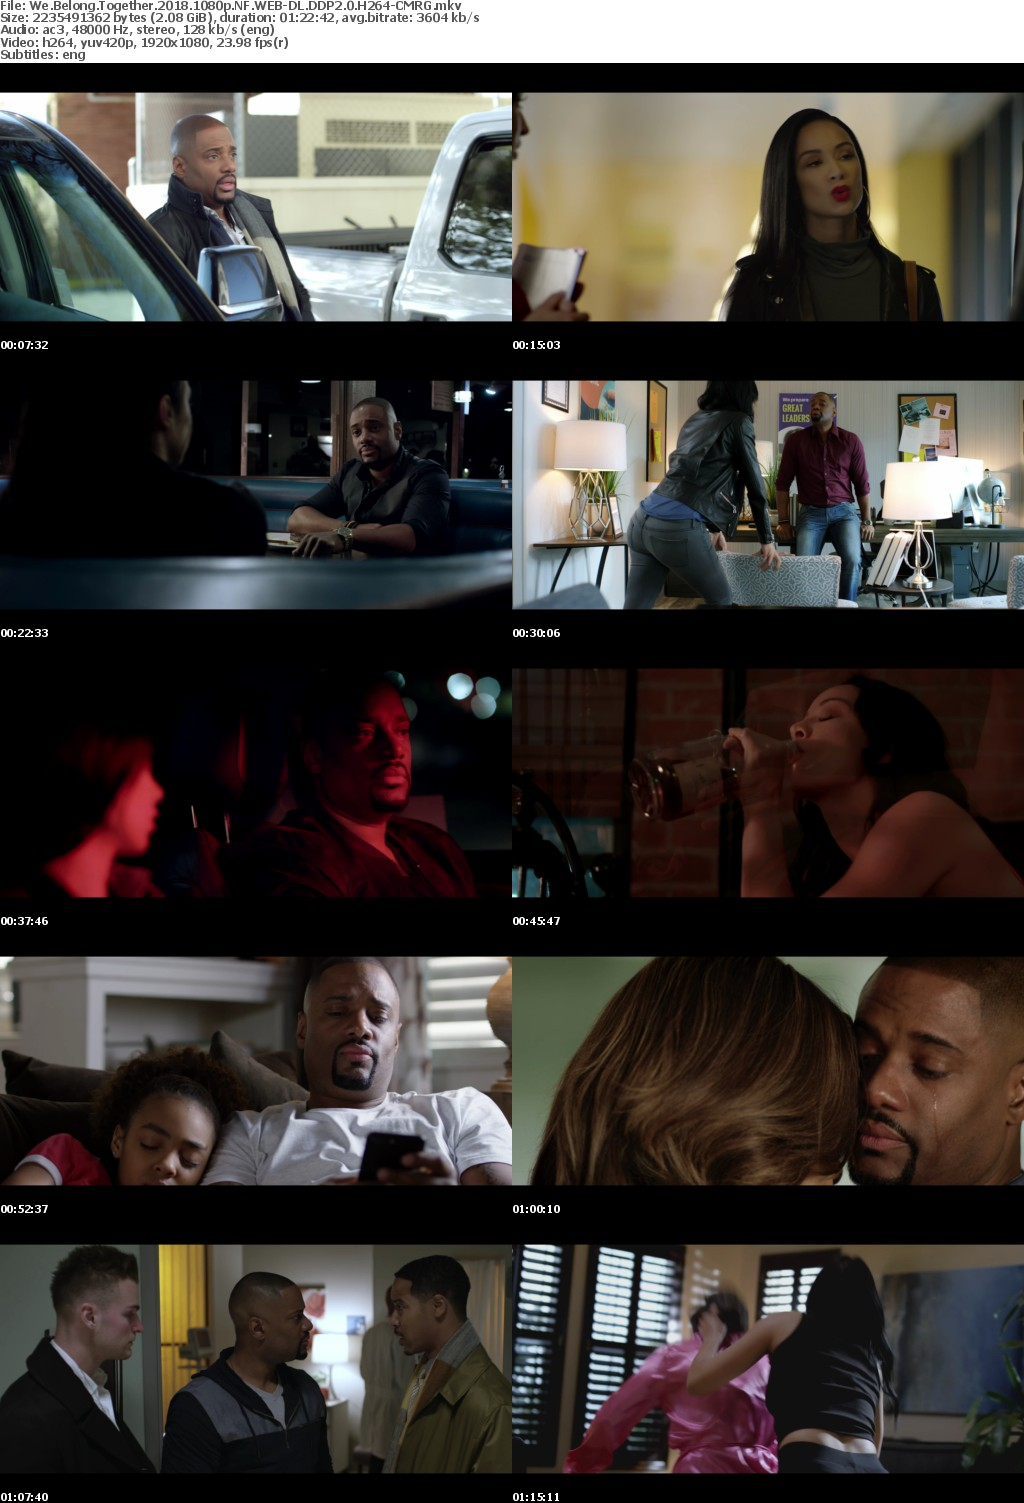 We Belong Together (2018) 1080p NF WEB DL DDP2.0 H264 CMRG